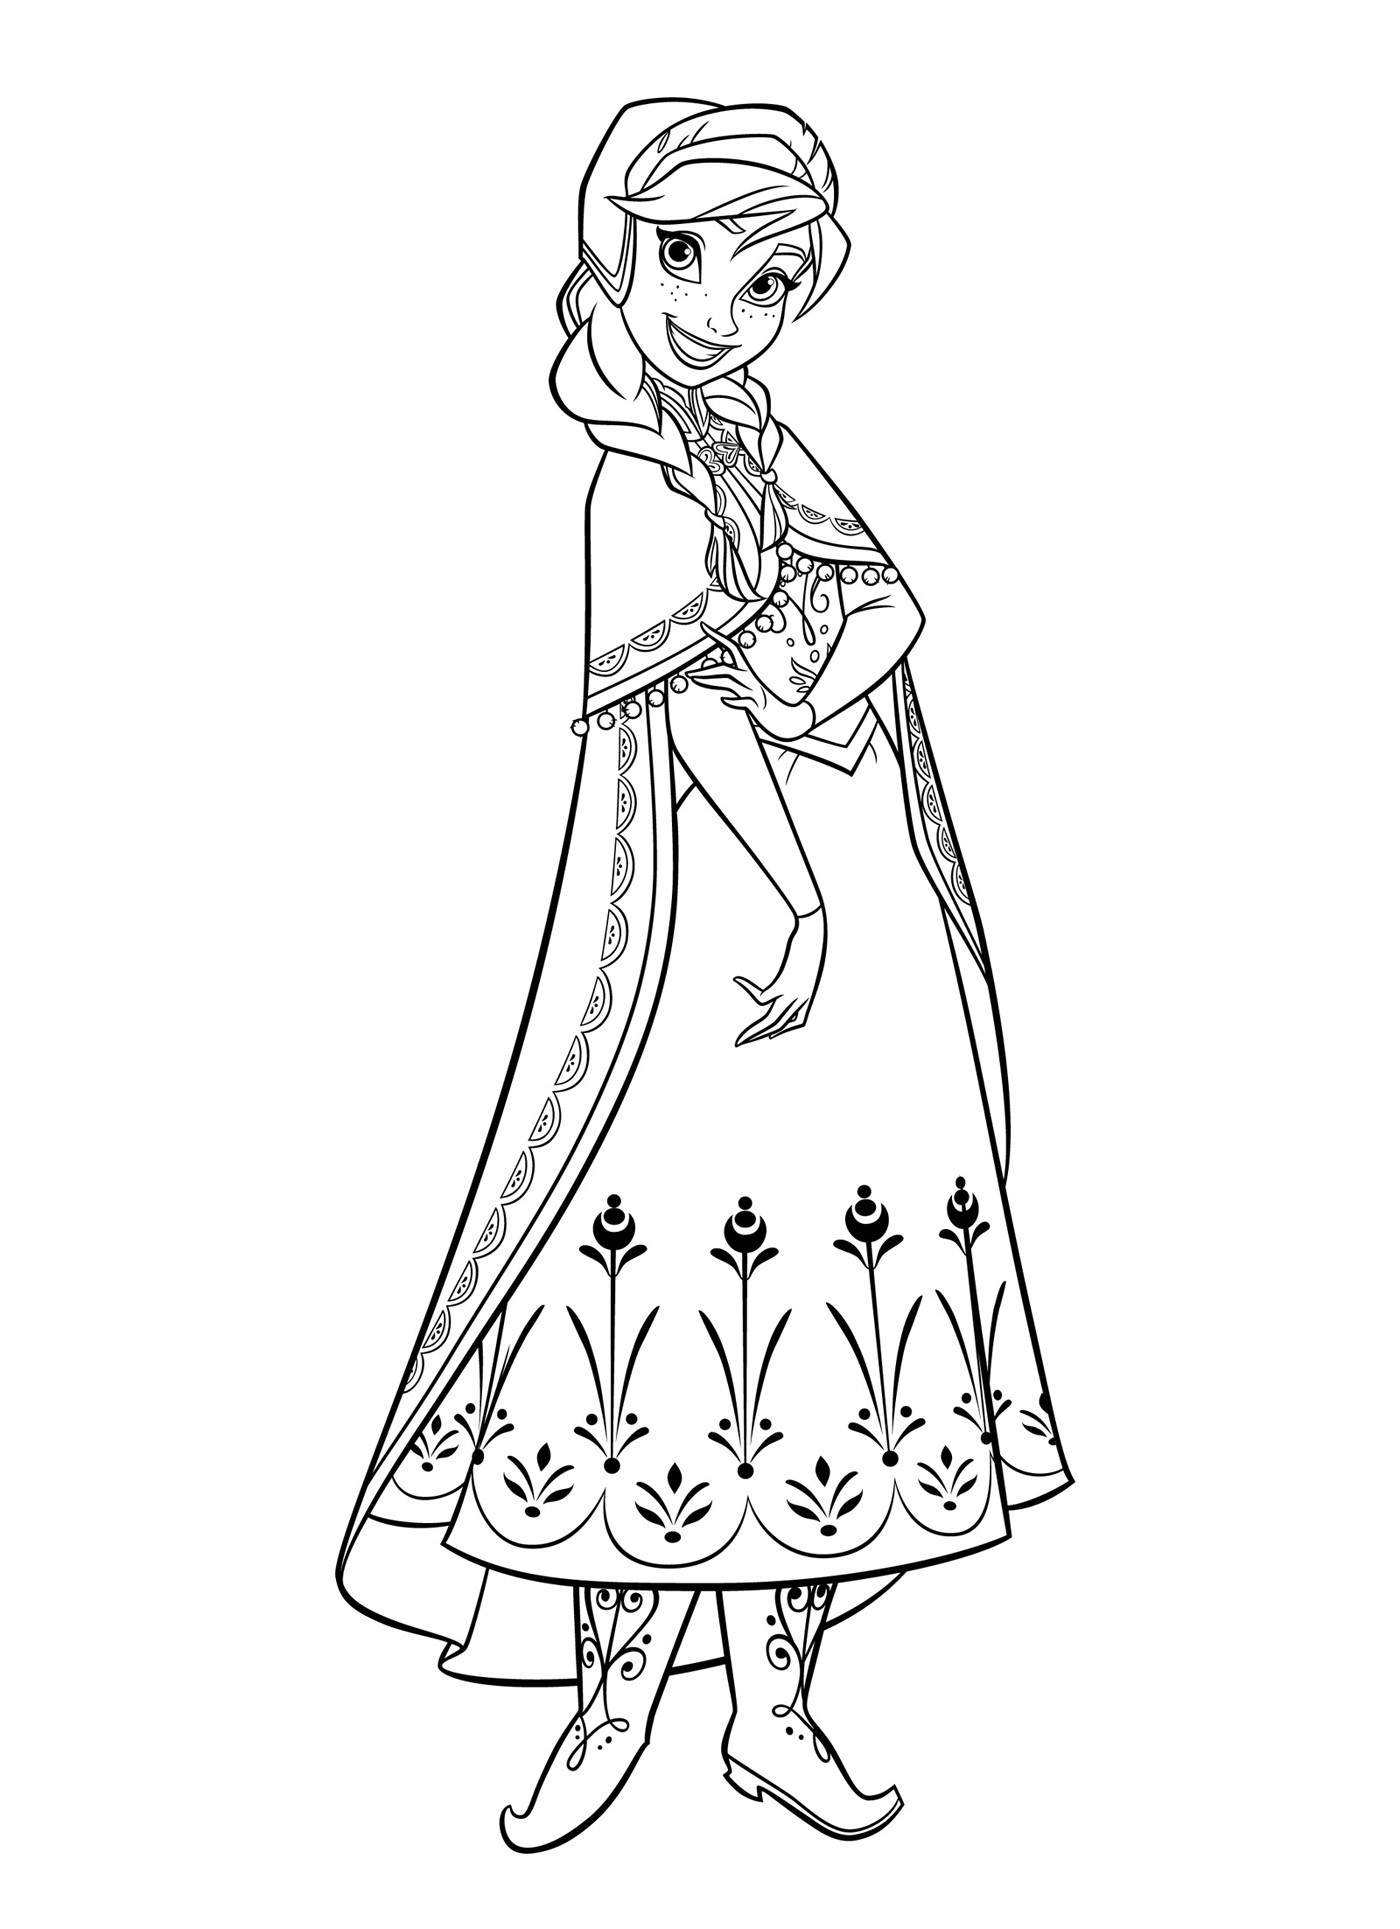 elsa frozen coloring sheets frozen elsa 02 coloring page coloring page central sheets frozen coloring elsa